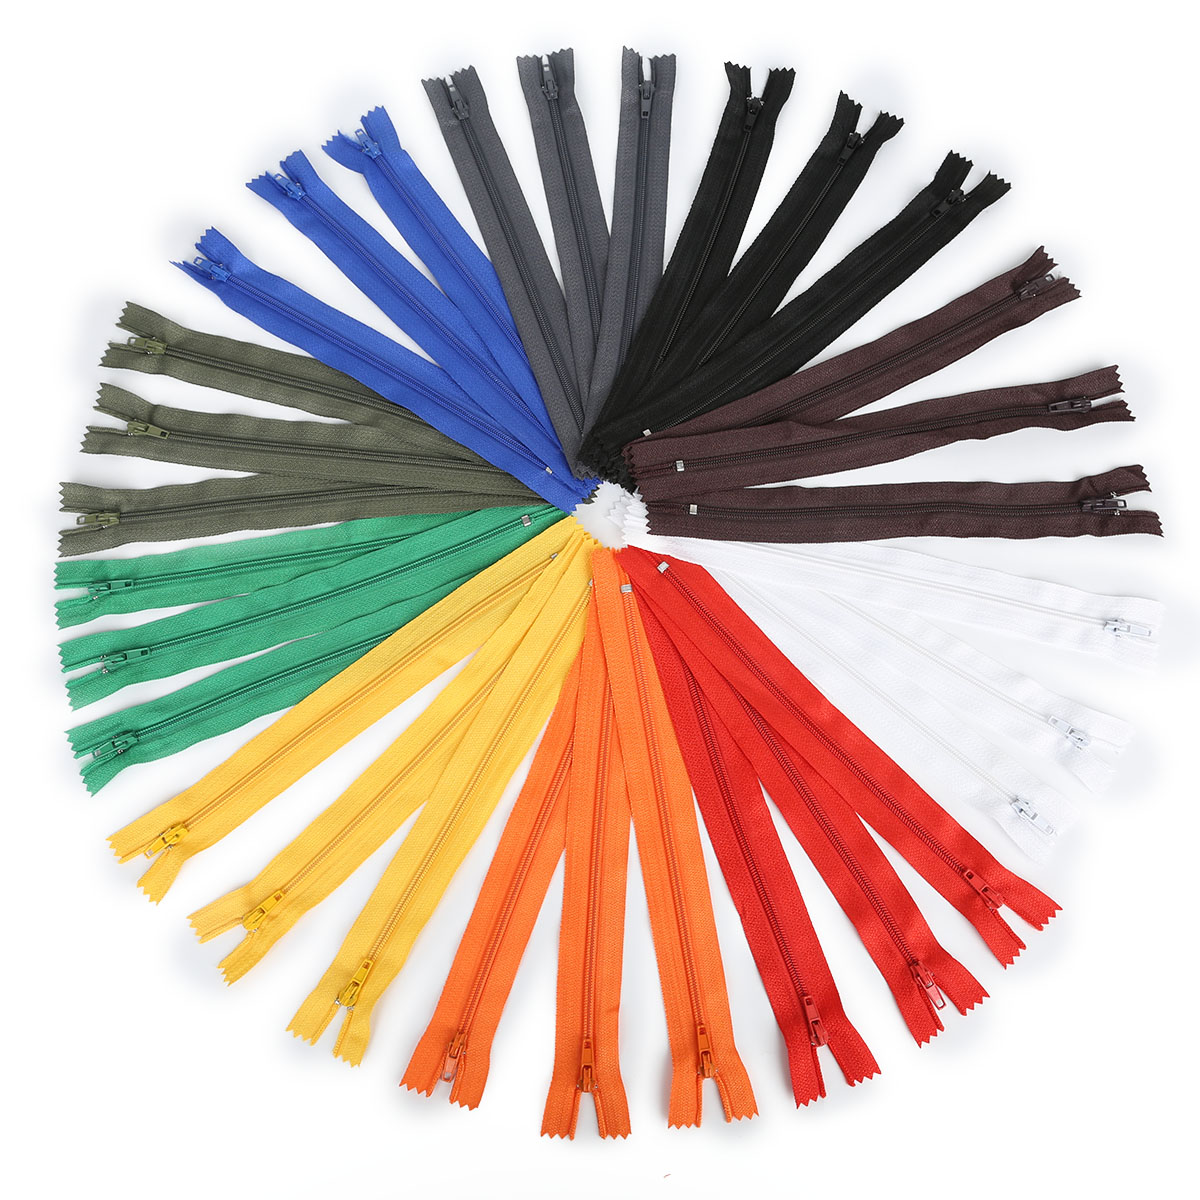 Wholesale Retail 10Pcs/lot High Quality 20cm Length Colorful Nylon Coil Zippers Tailor Garment Sewing Handcraft DIY Accessories